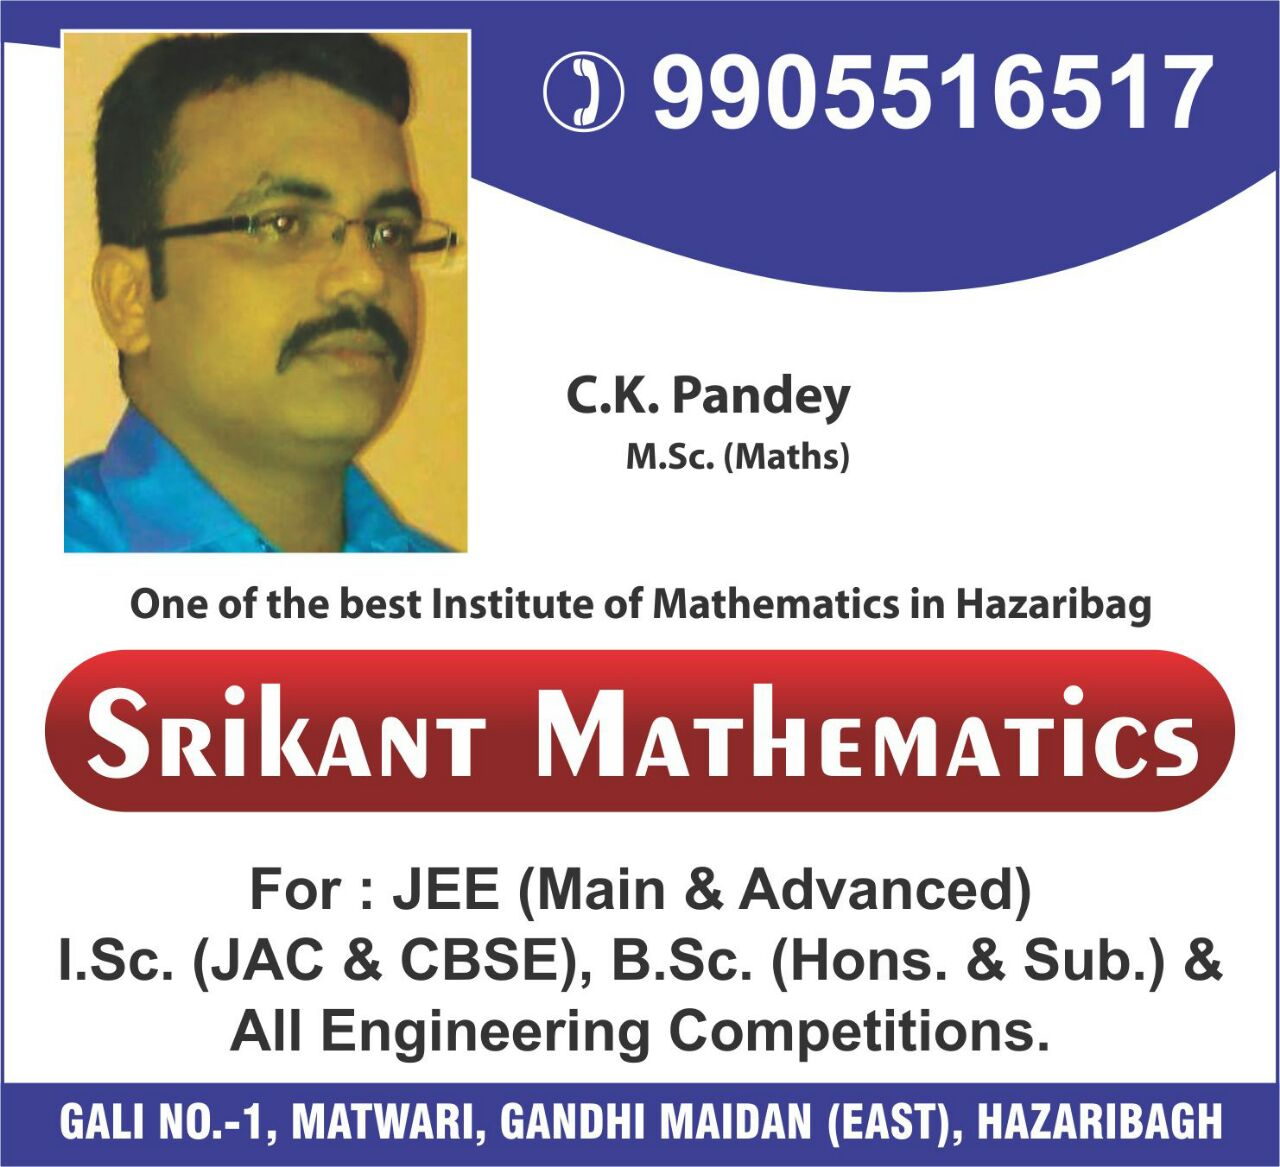 BEST BSC MATH INSTITUTE IN HAZARIBAGH